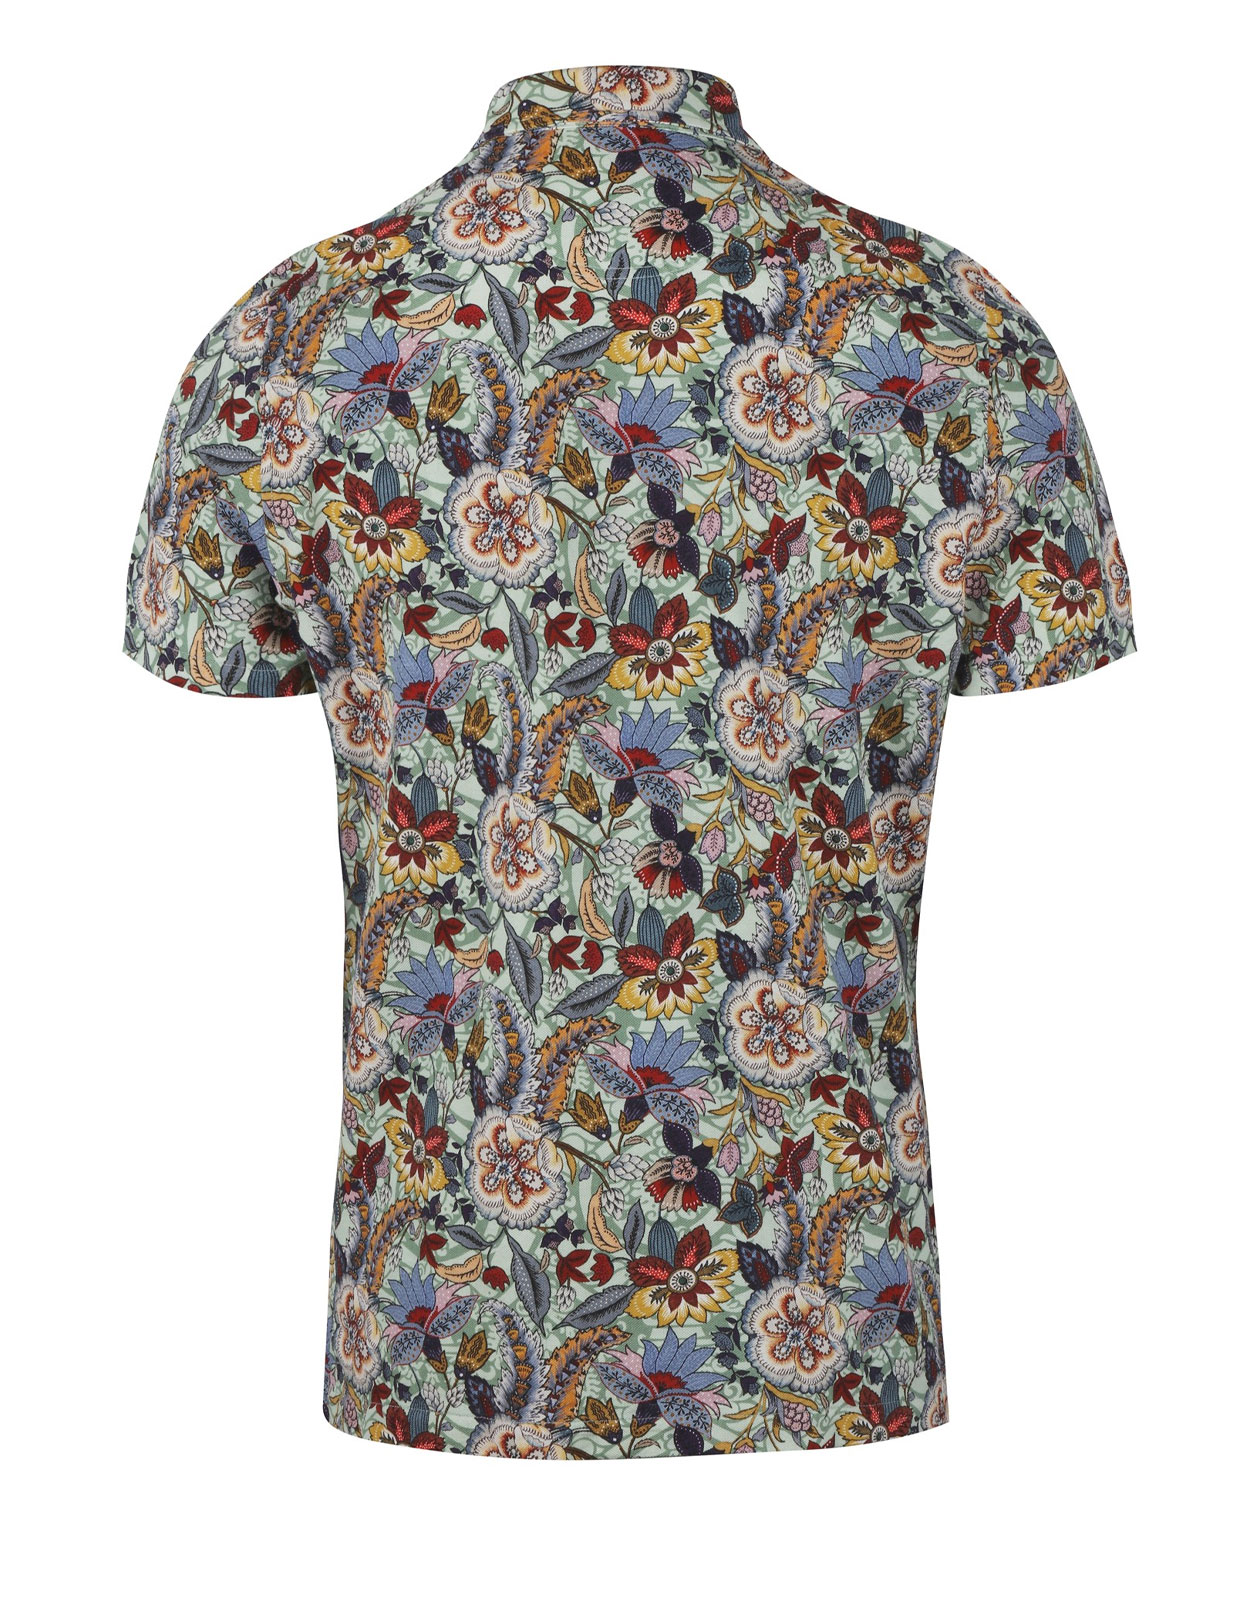 Polo Shirt Printed Flower Cotton Green Floral